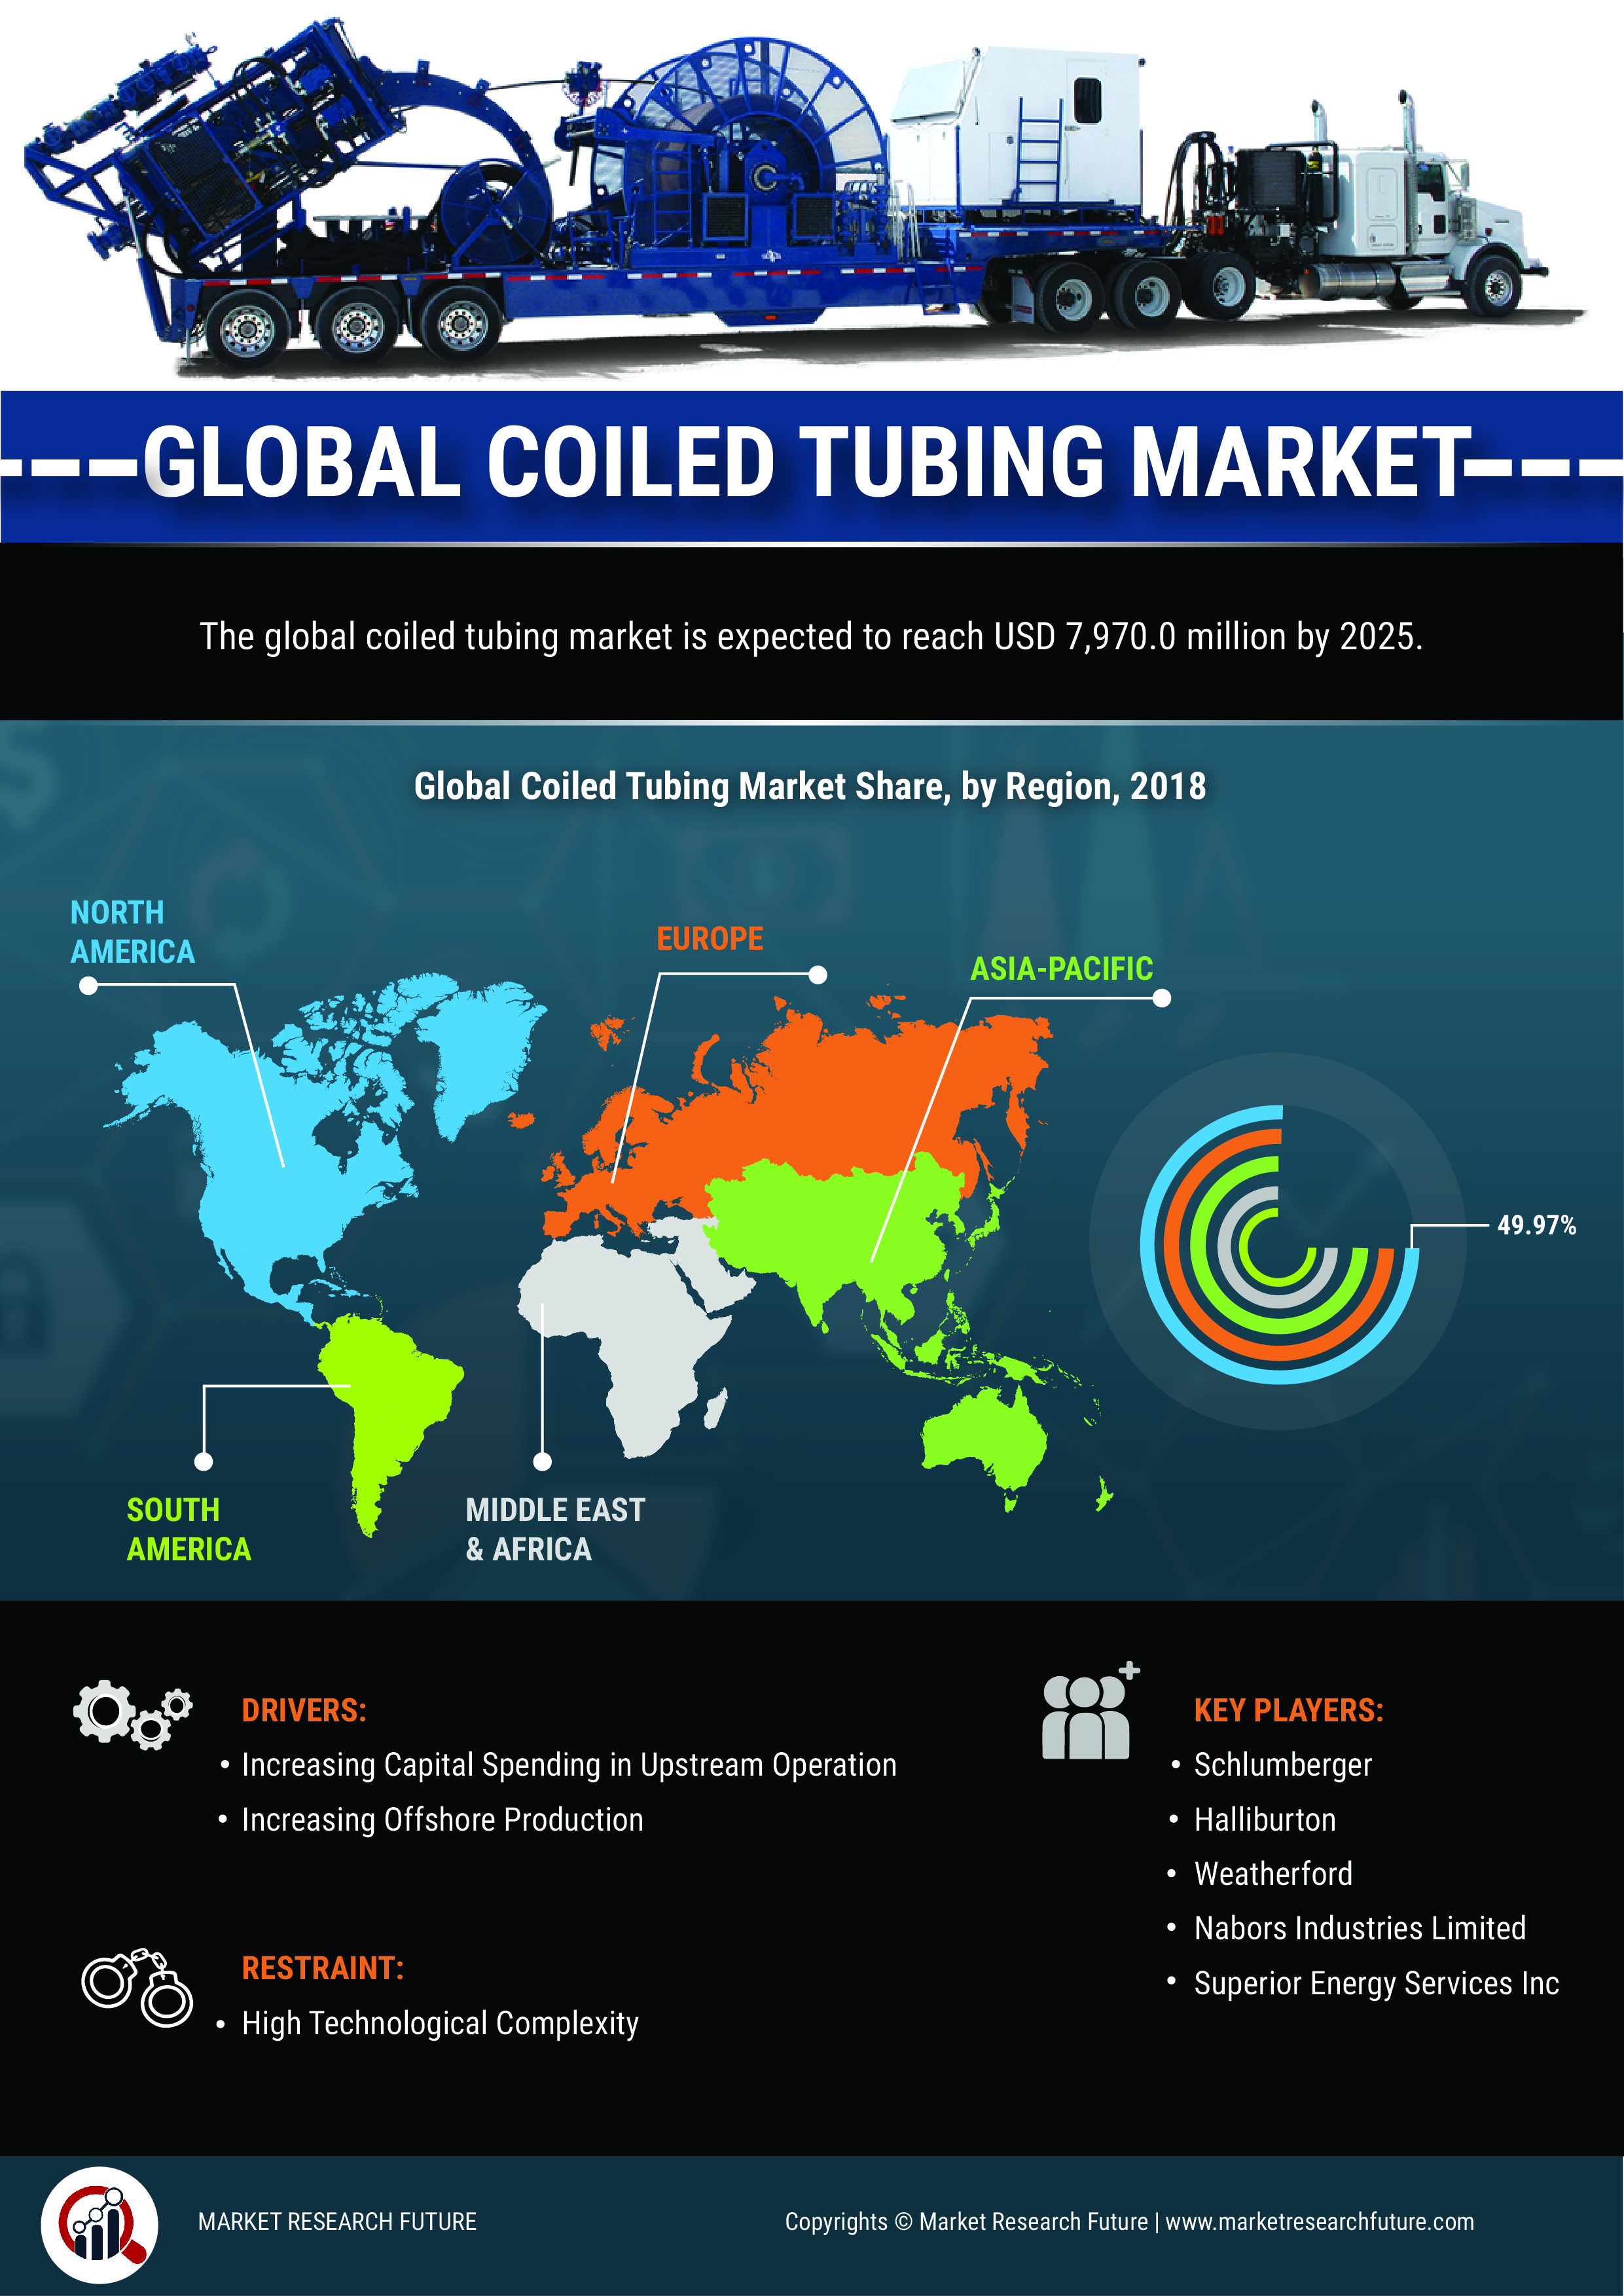 Coiled Tubing Market 2019 Share, Size, Key Players, Merger, Business Insights, Revenue, Growth Factors, Regional Market Characteristics, Competitive Analysis And Global Industry Forecast To 2023